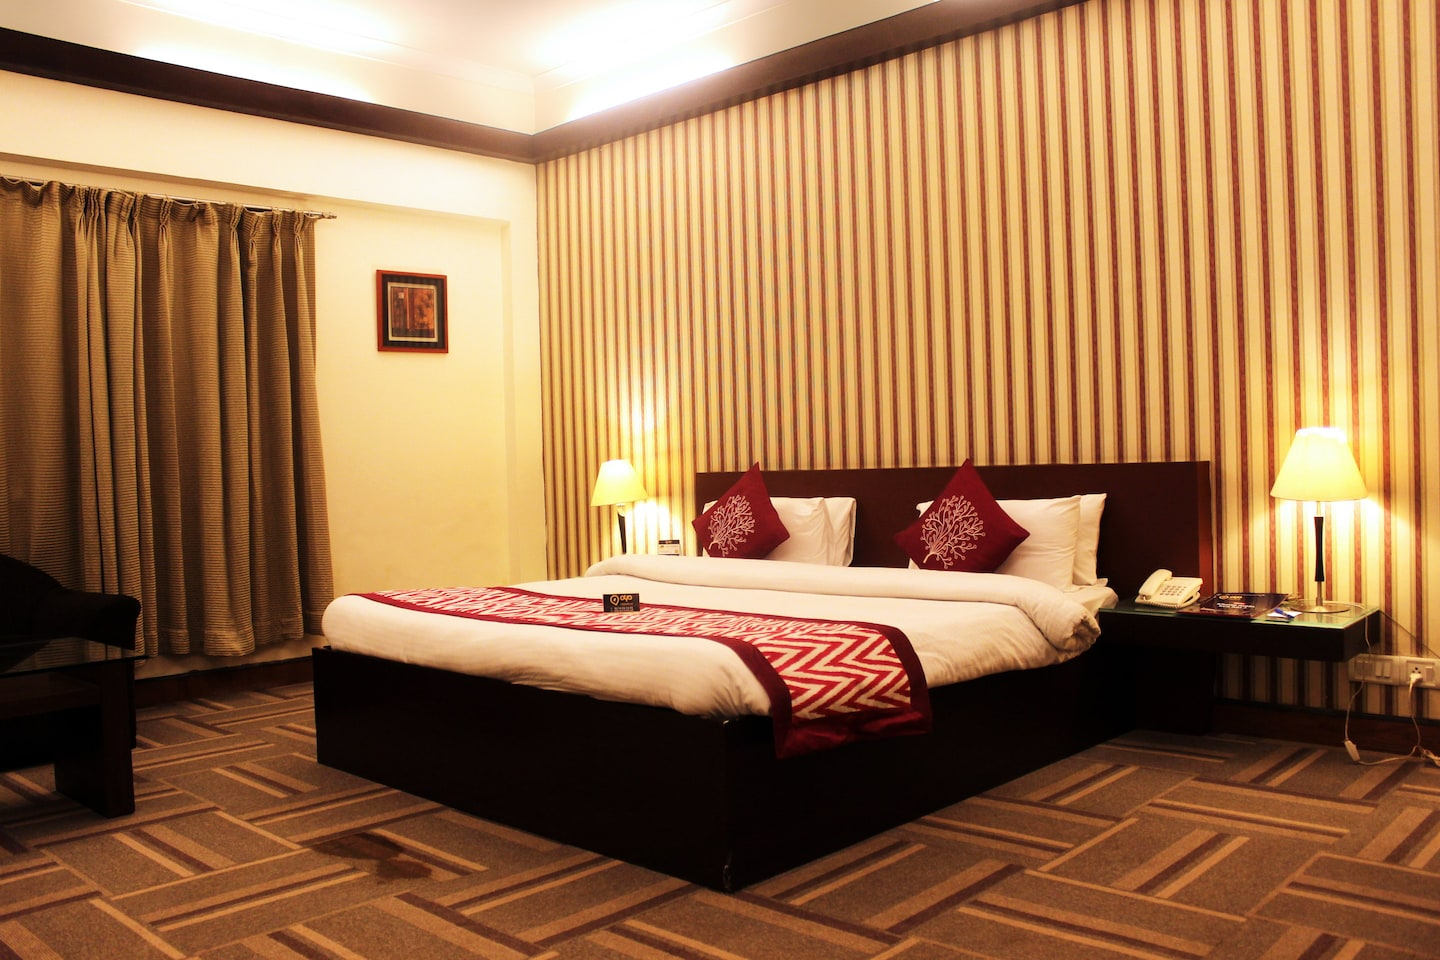 OYO Premium 240 MDI Gurgaon Room-1